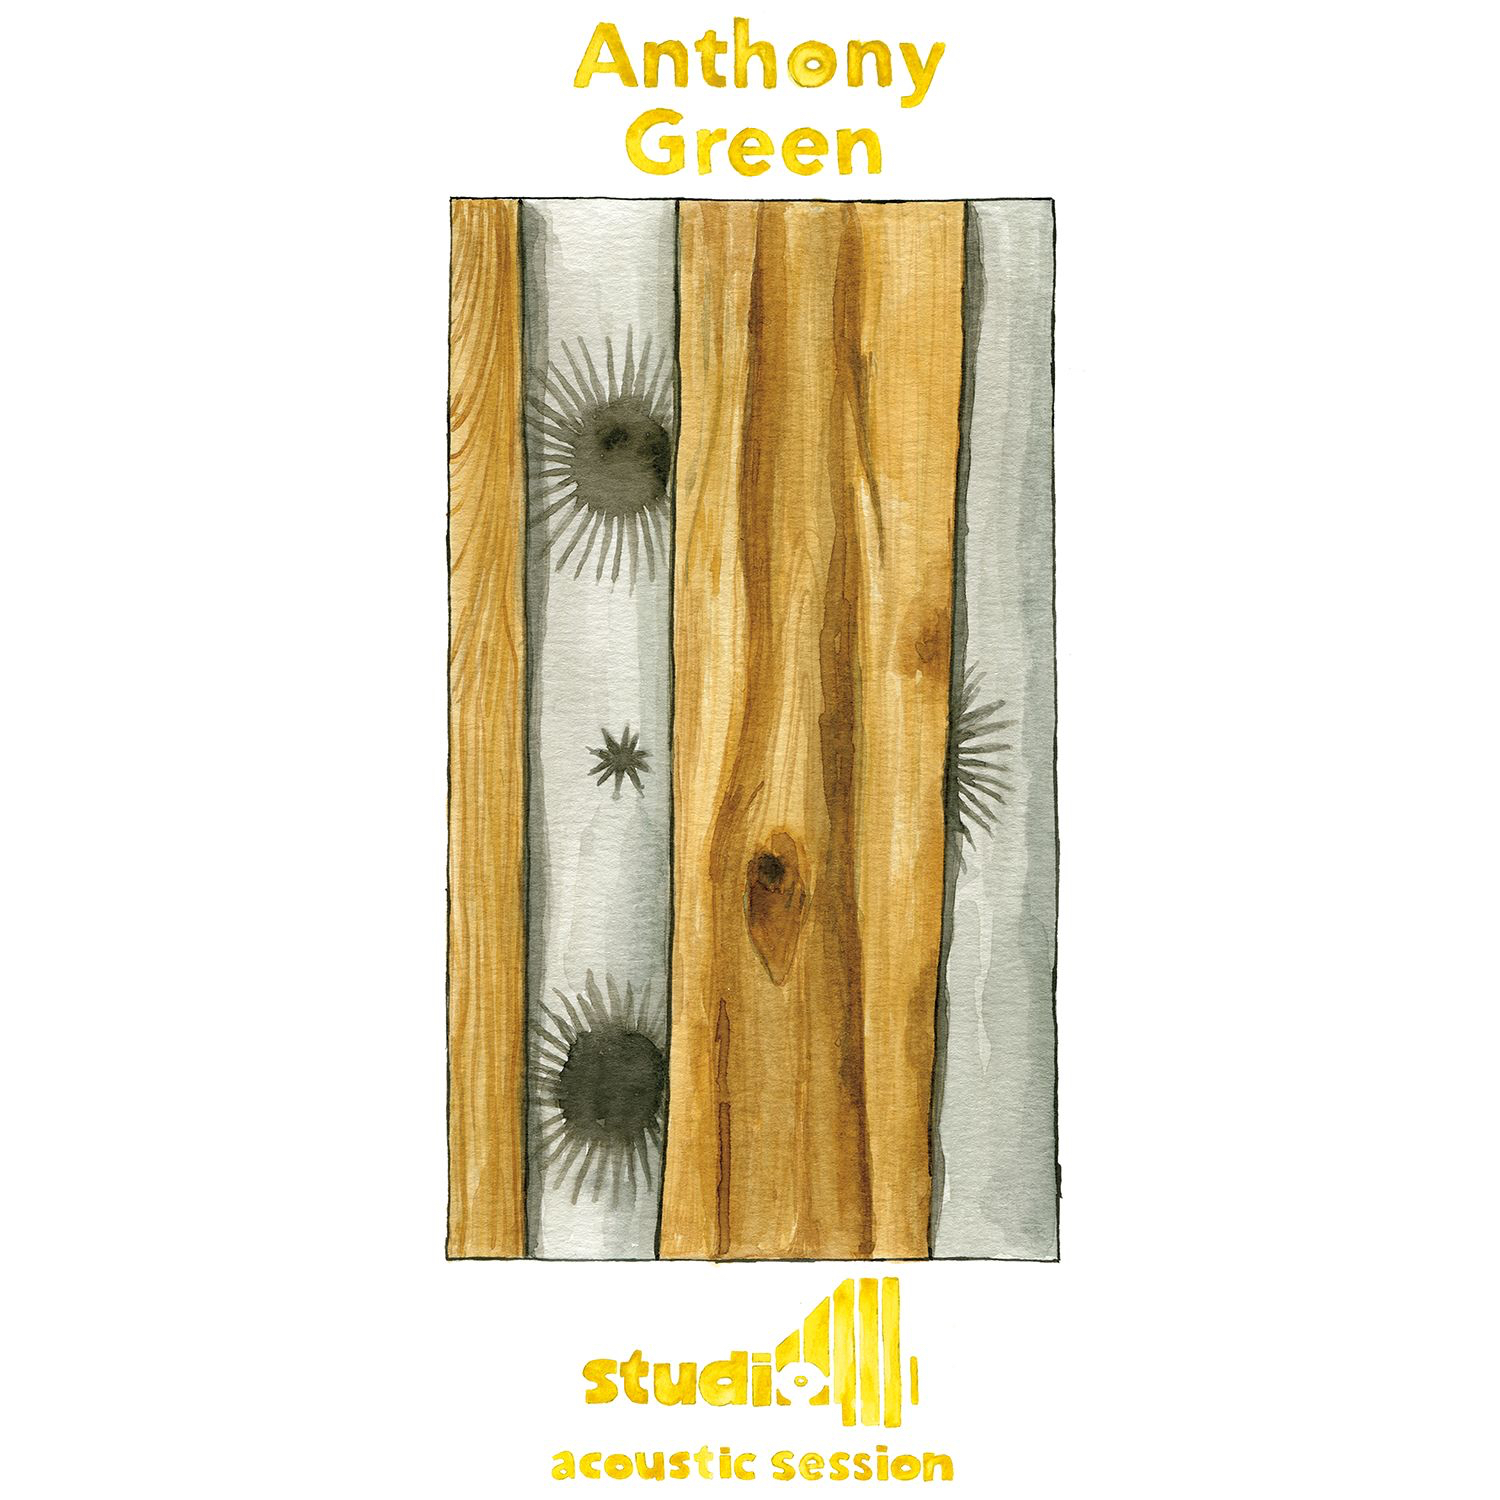 Anthony Green - Studio 4 Acoustic Session (2018)